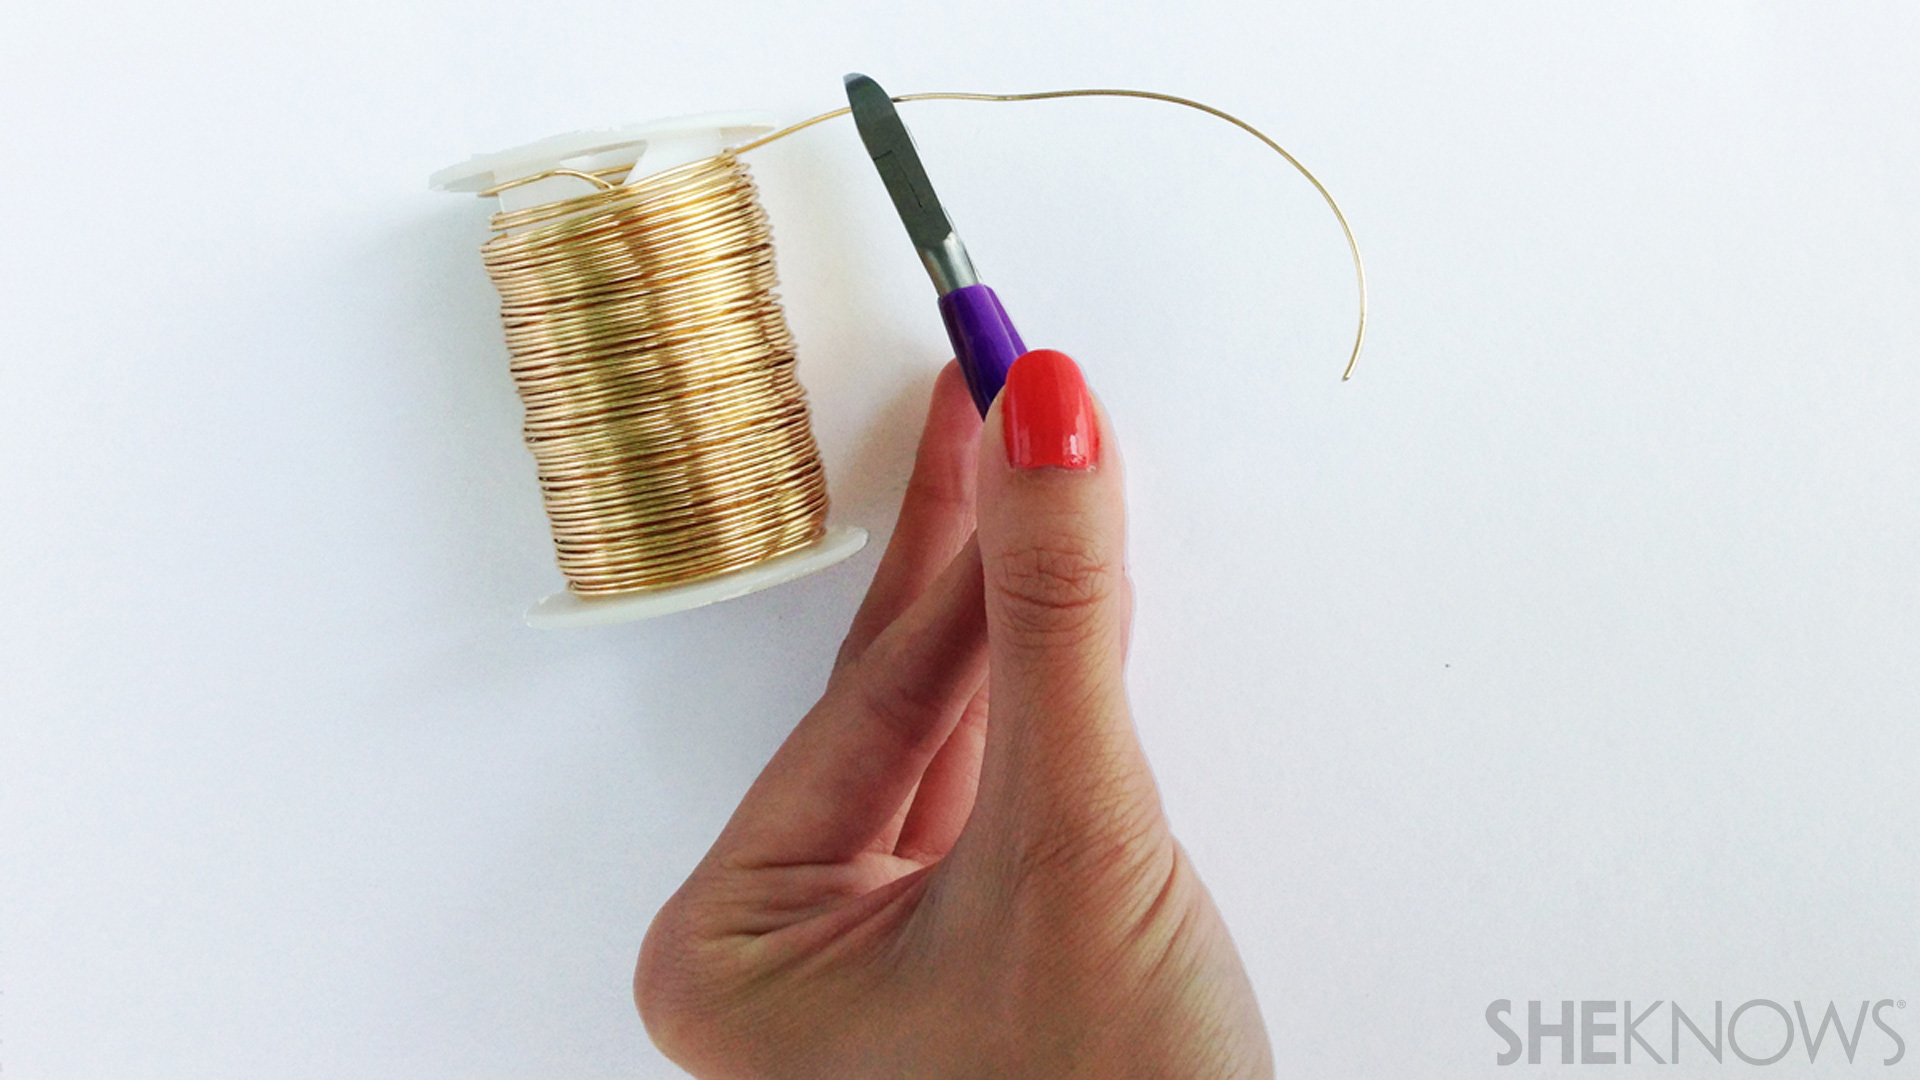 Make your own wire jewelry with these simple how-tos